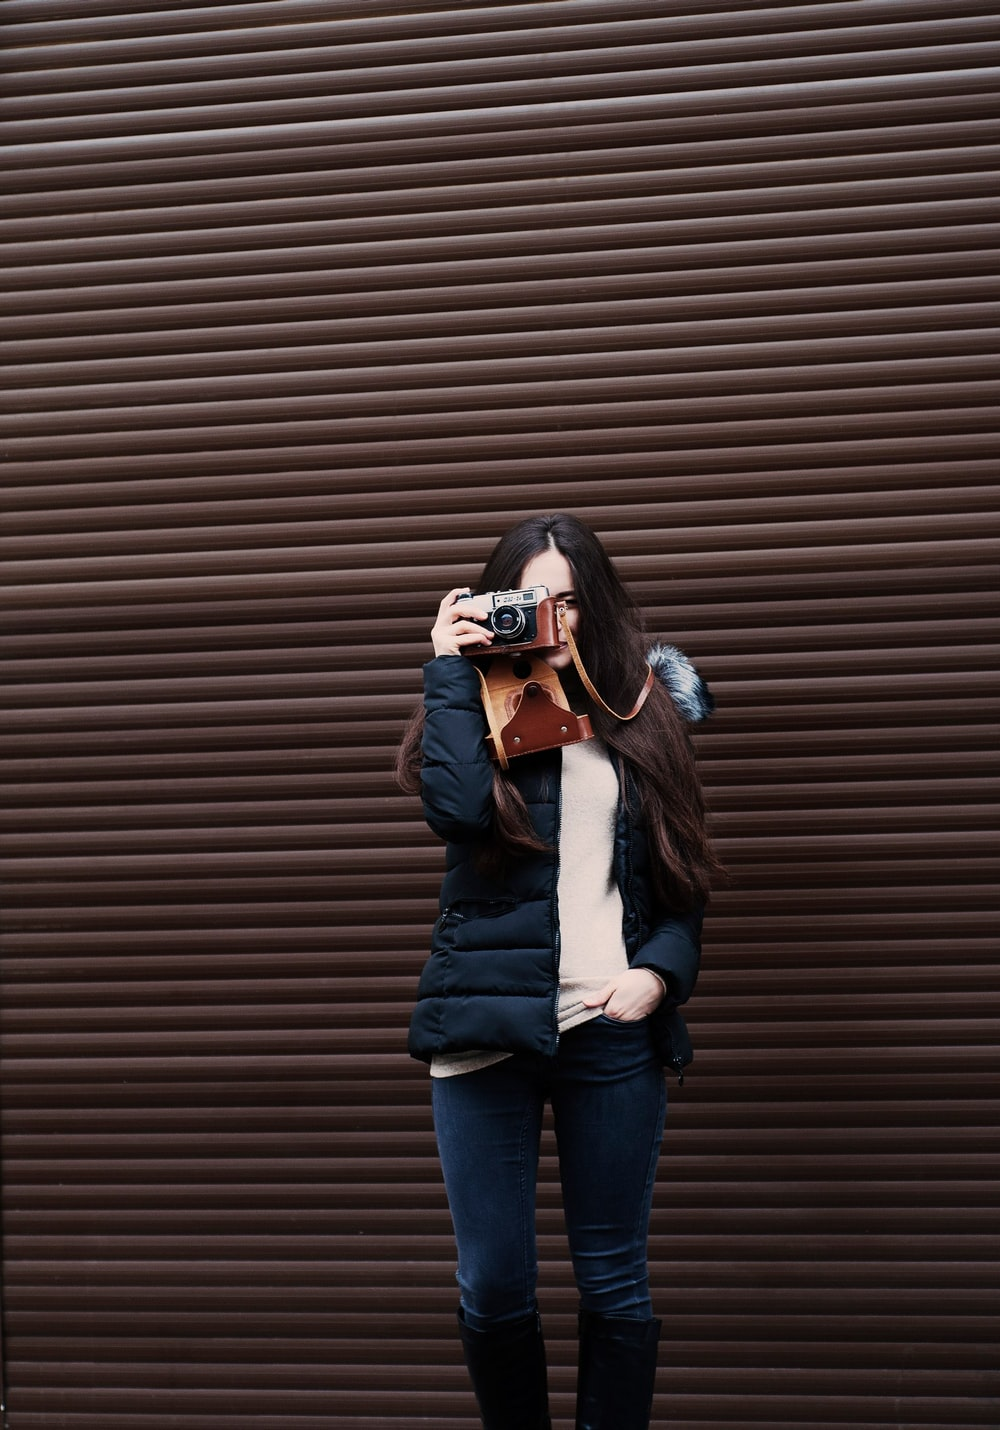 woman standing holding camera taking photo